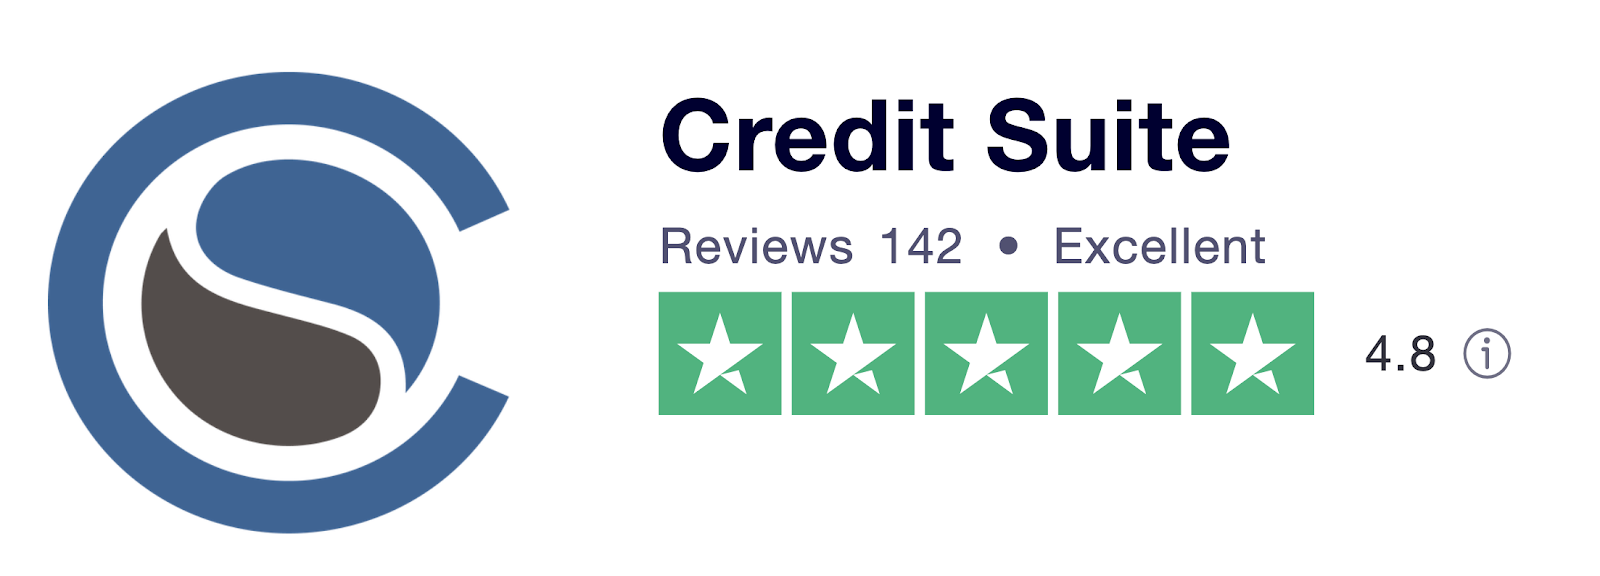 Credit Suite Reviews